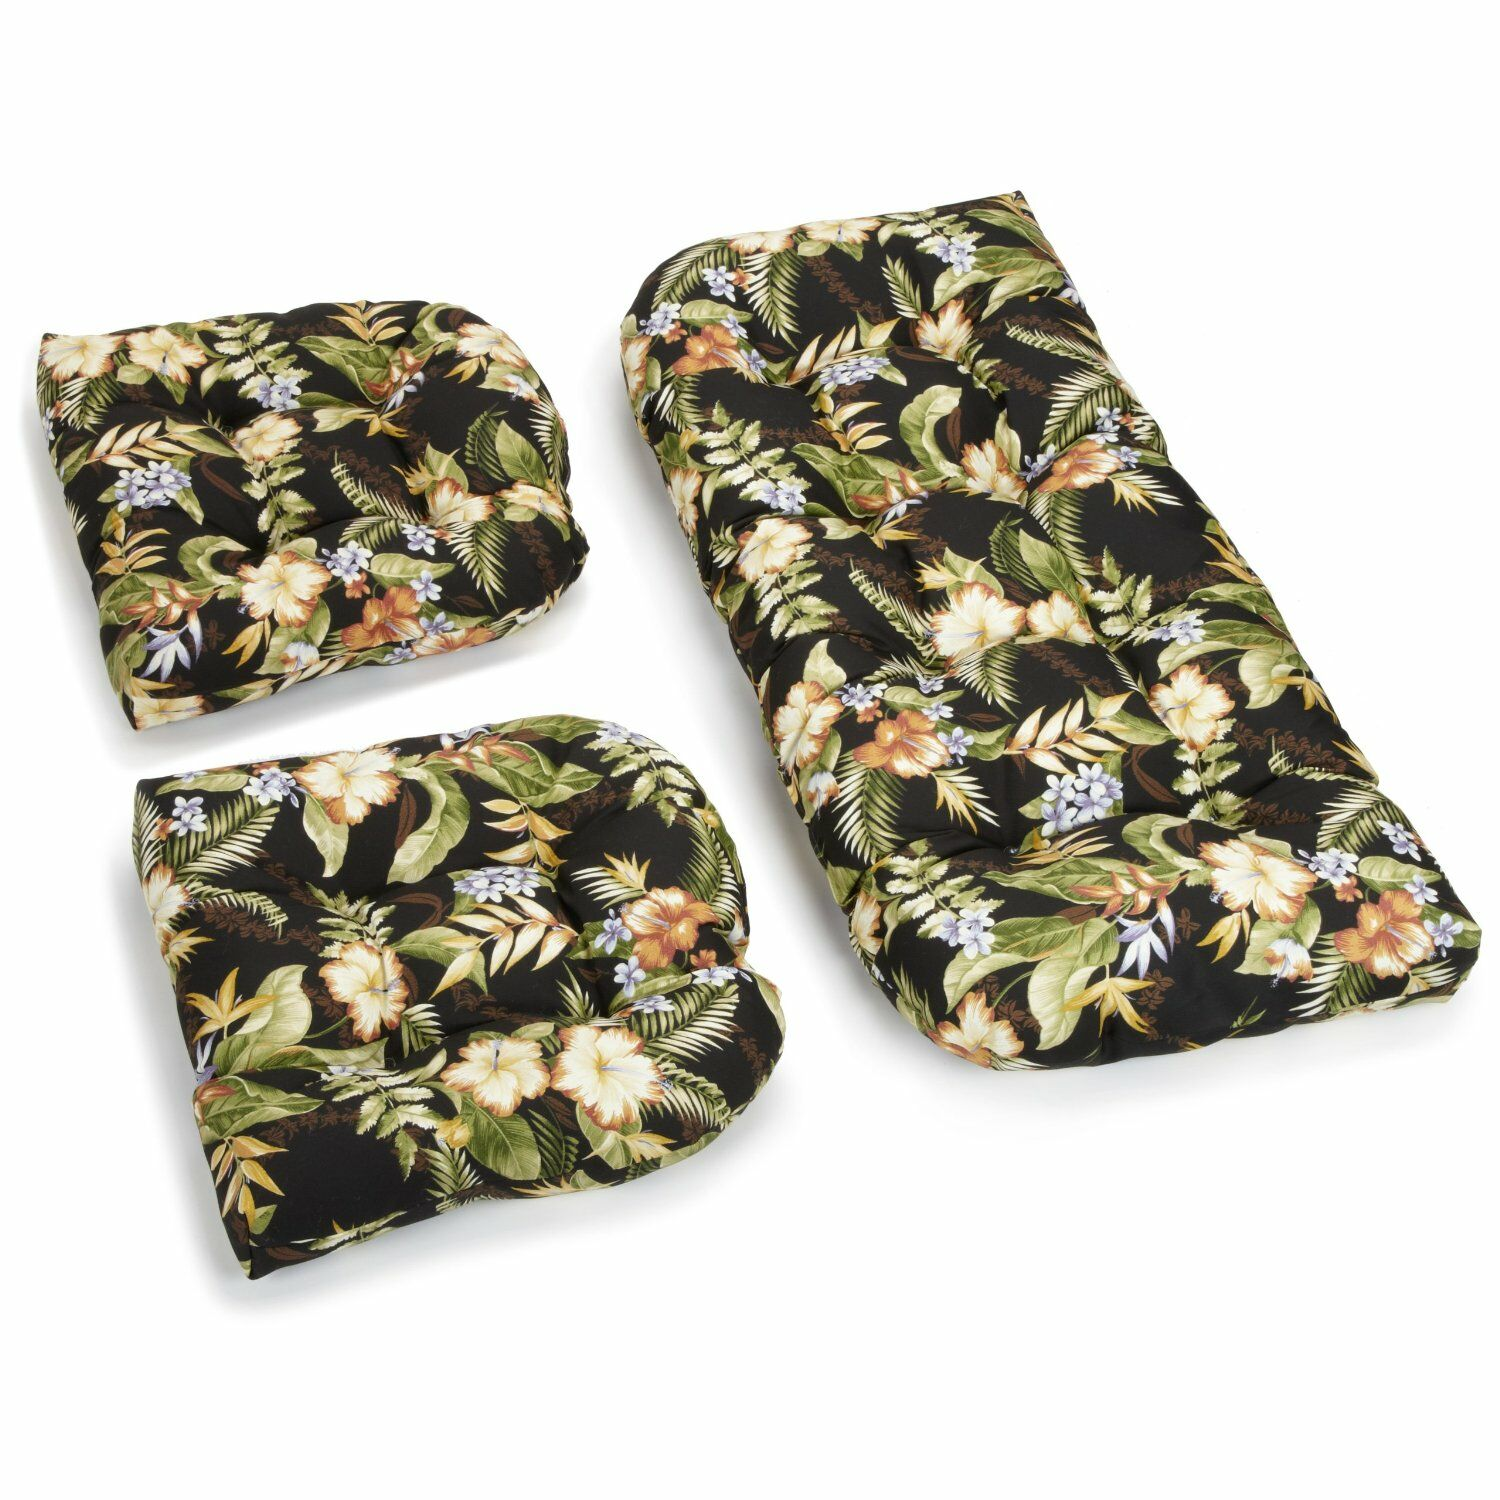 Floral Indoor/Outdoor Loveseat Cushion Fabric: Black/Green